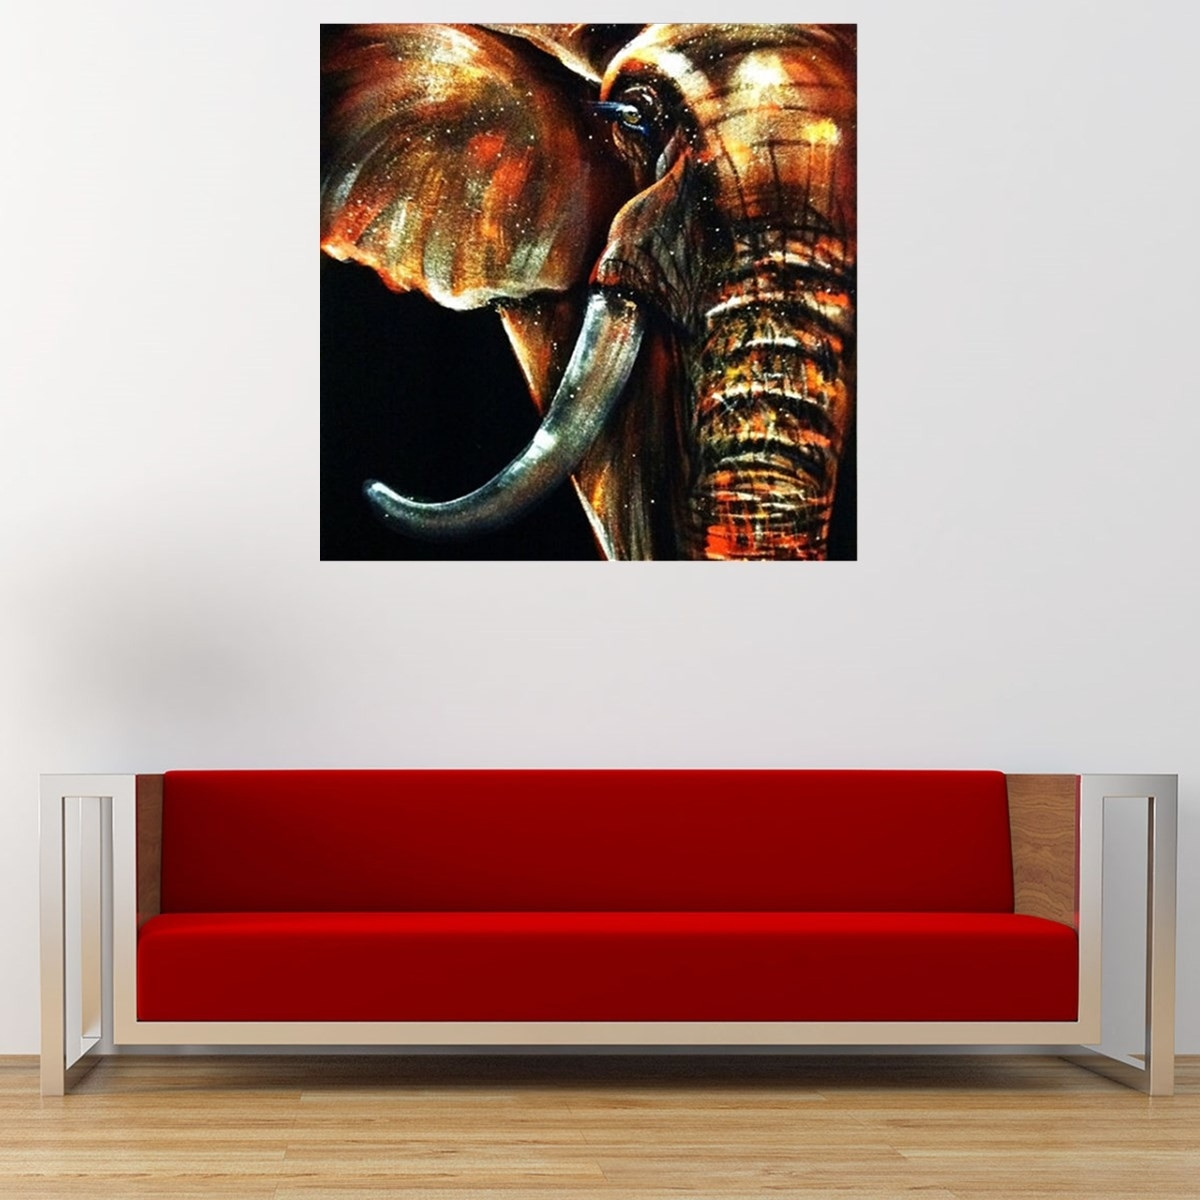 50x50cm Modern Abstract Huge Elephant Wall Art Decor Oil Painting On With Regard To Best And Newest Elephant Wall Art (View 7 of 15)